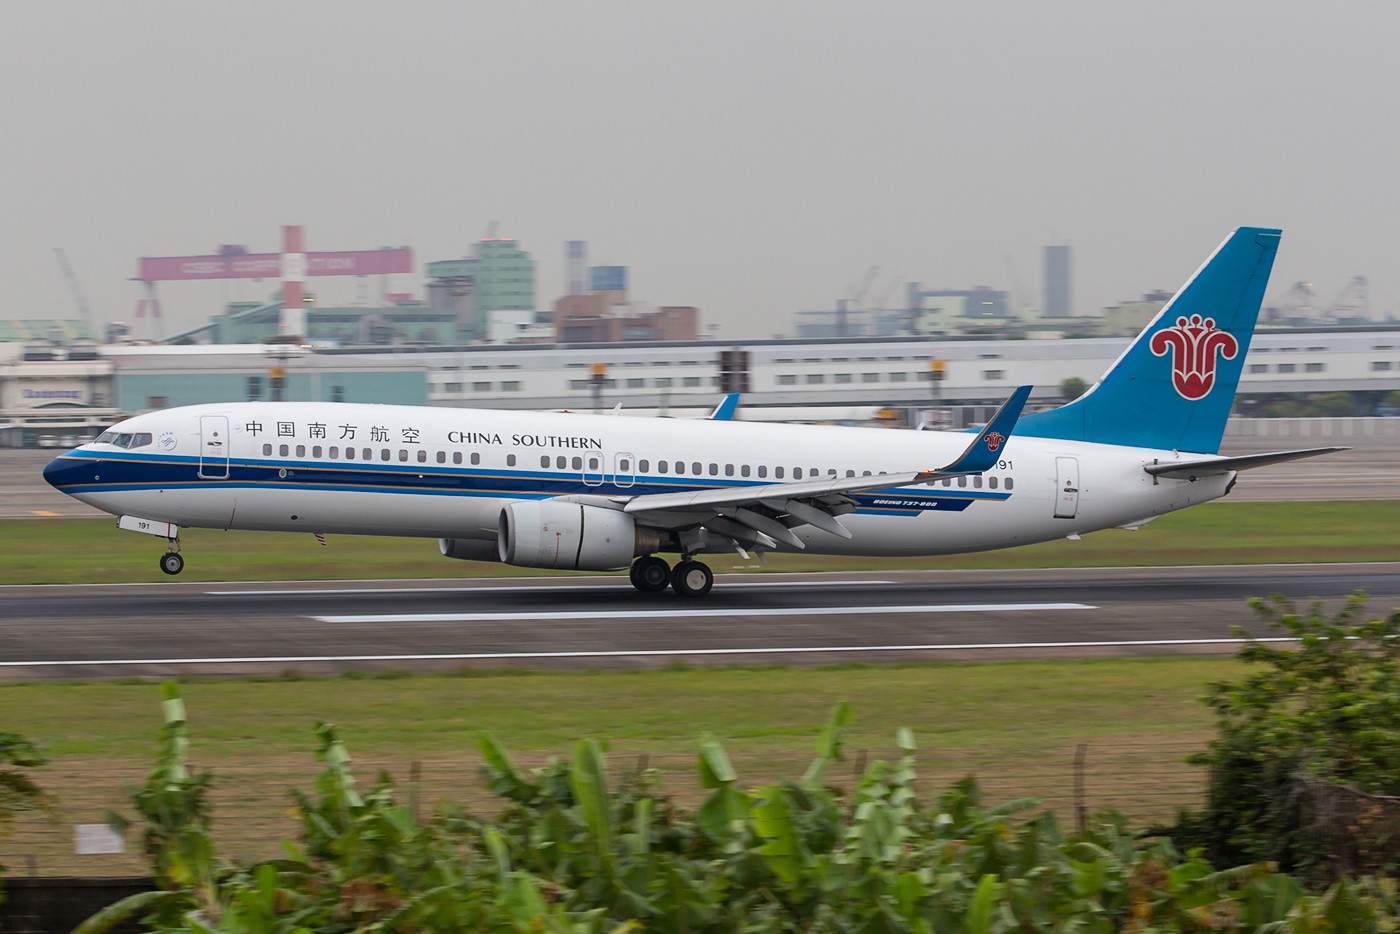 Boeing 737-800 der China Southern, der größten Airline in der VR China.